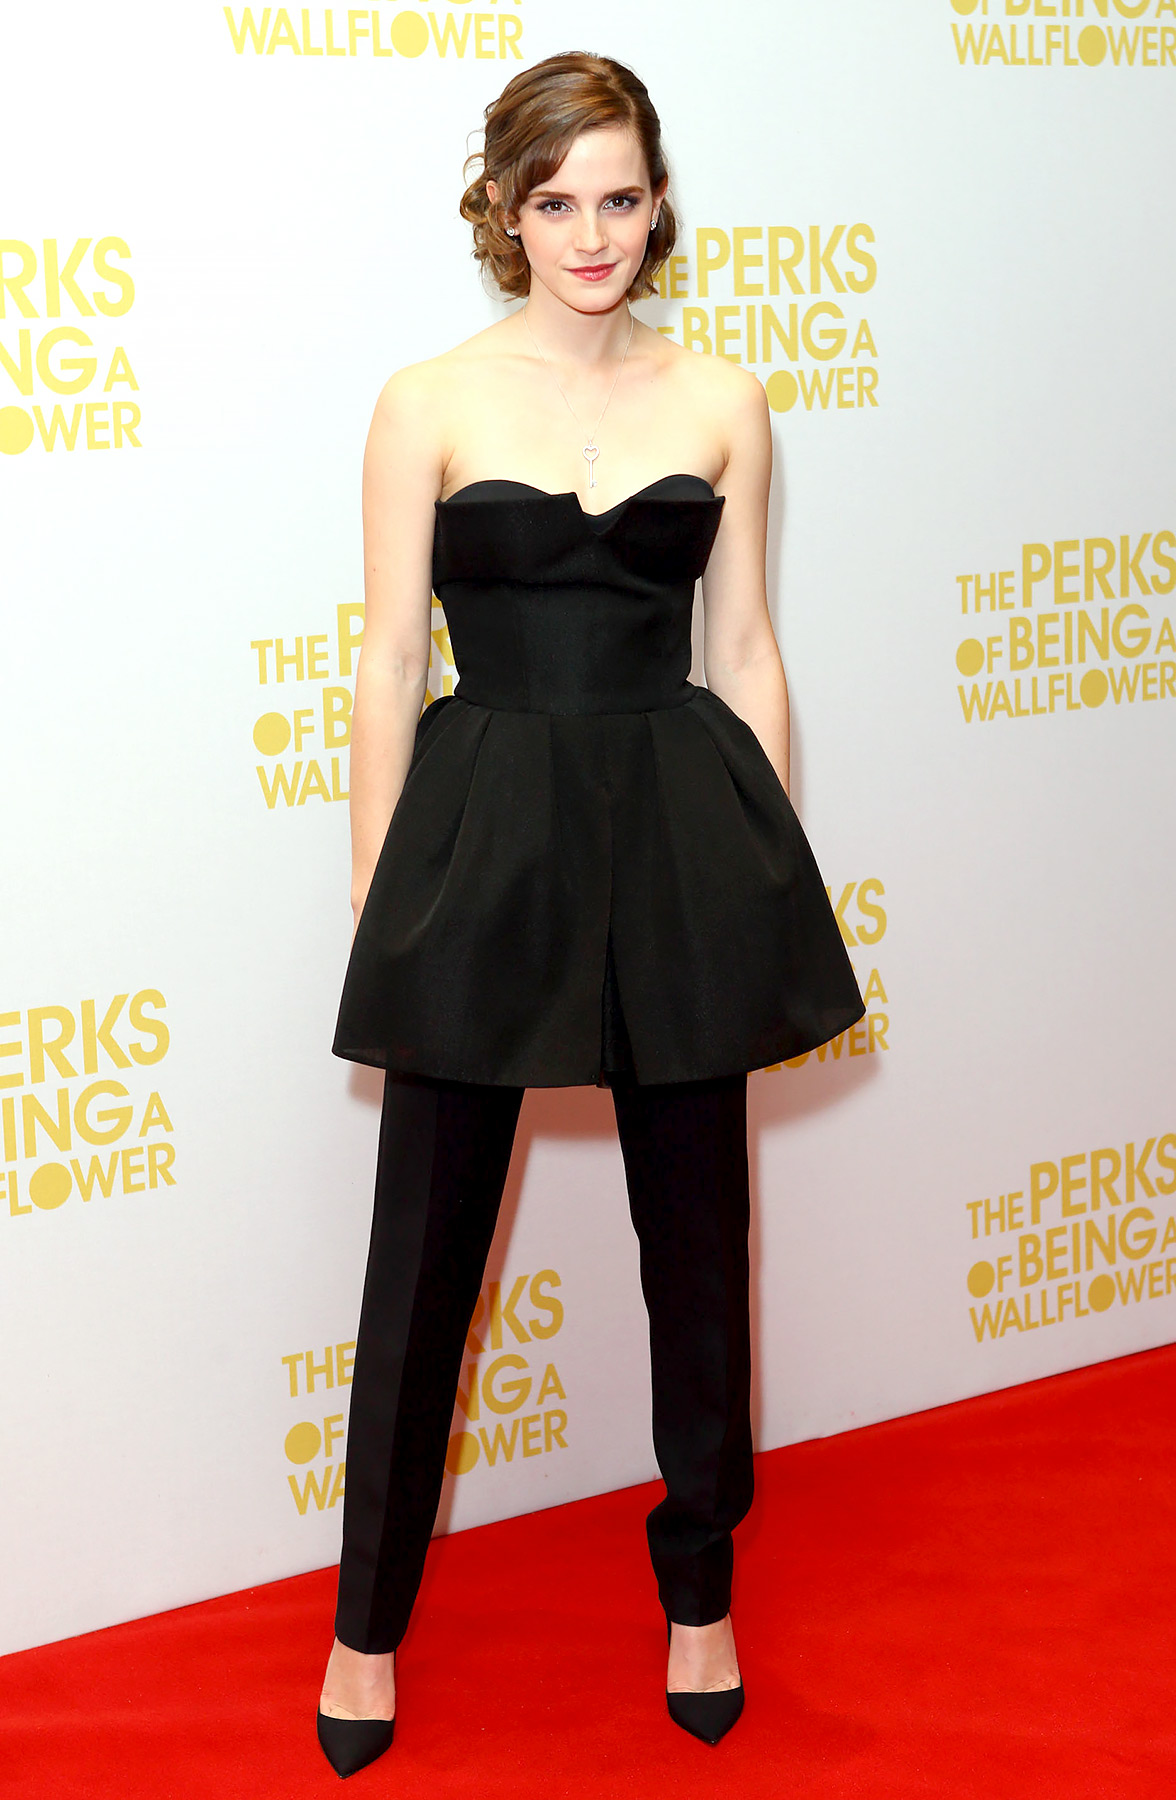 The style star showed off her fashion sensibility at the premiere for her acclaimed indie, The Perks of Being a Wallflower . She kicked the trend of a dress over pants up a notch, wearing a Christian Dior runway look.